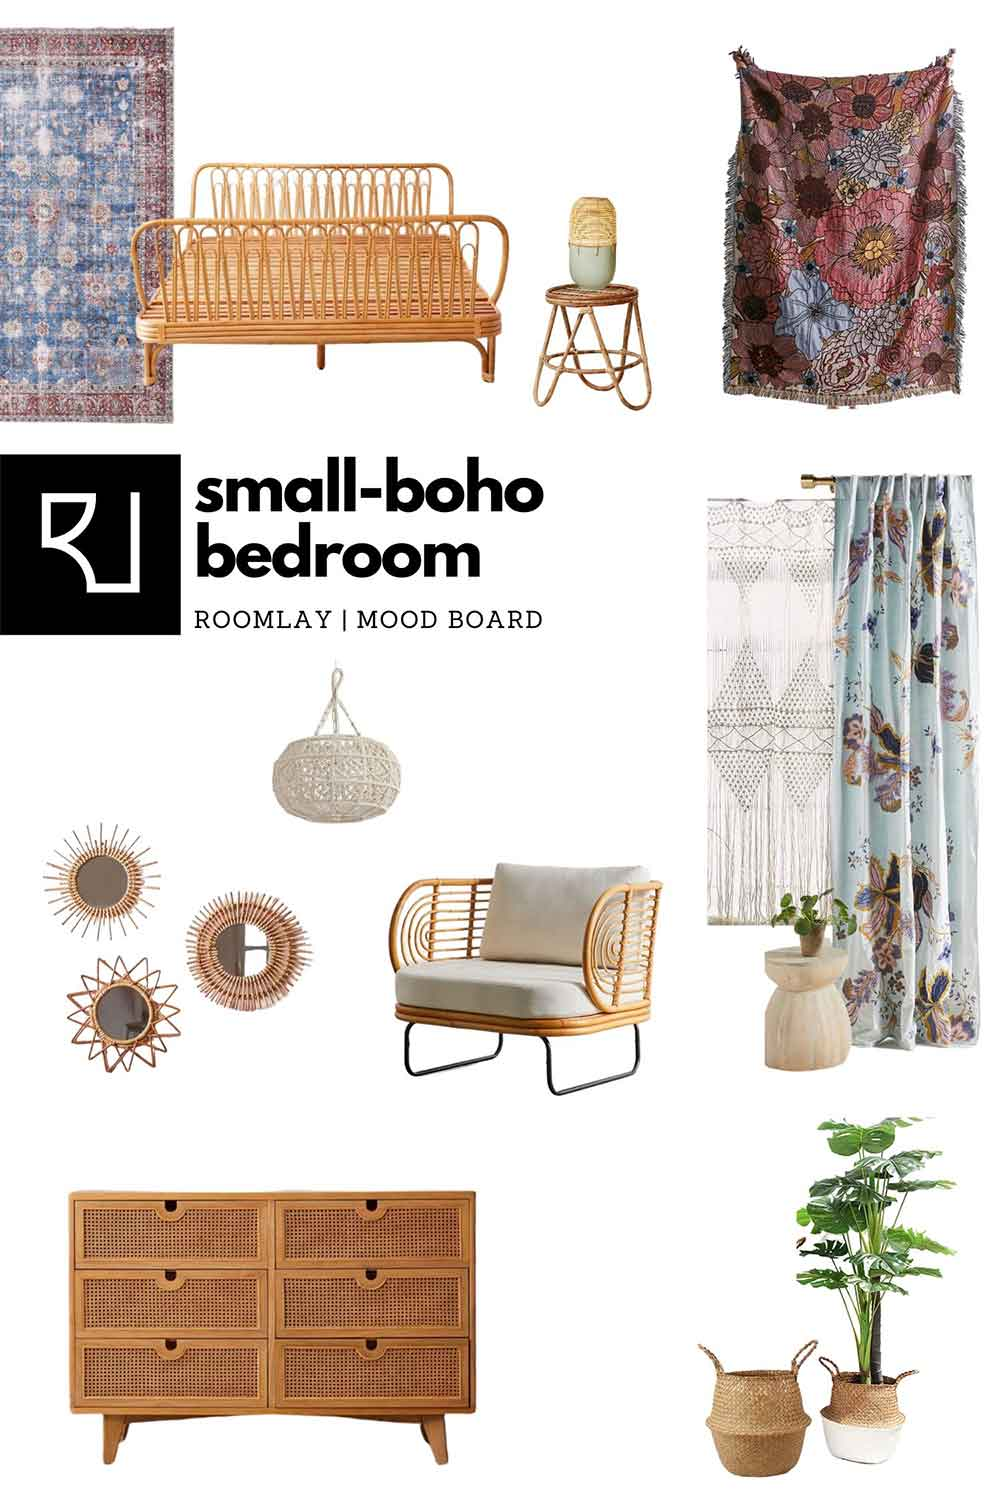 bohemian furniture mood board for small bedroom layout